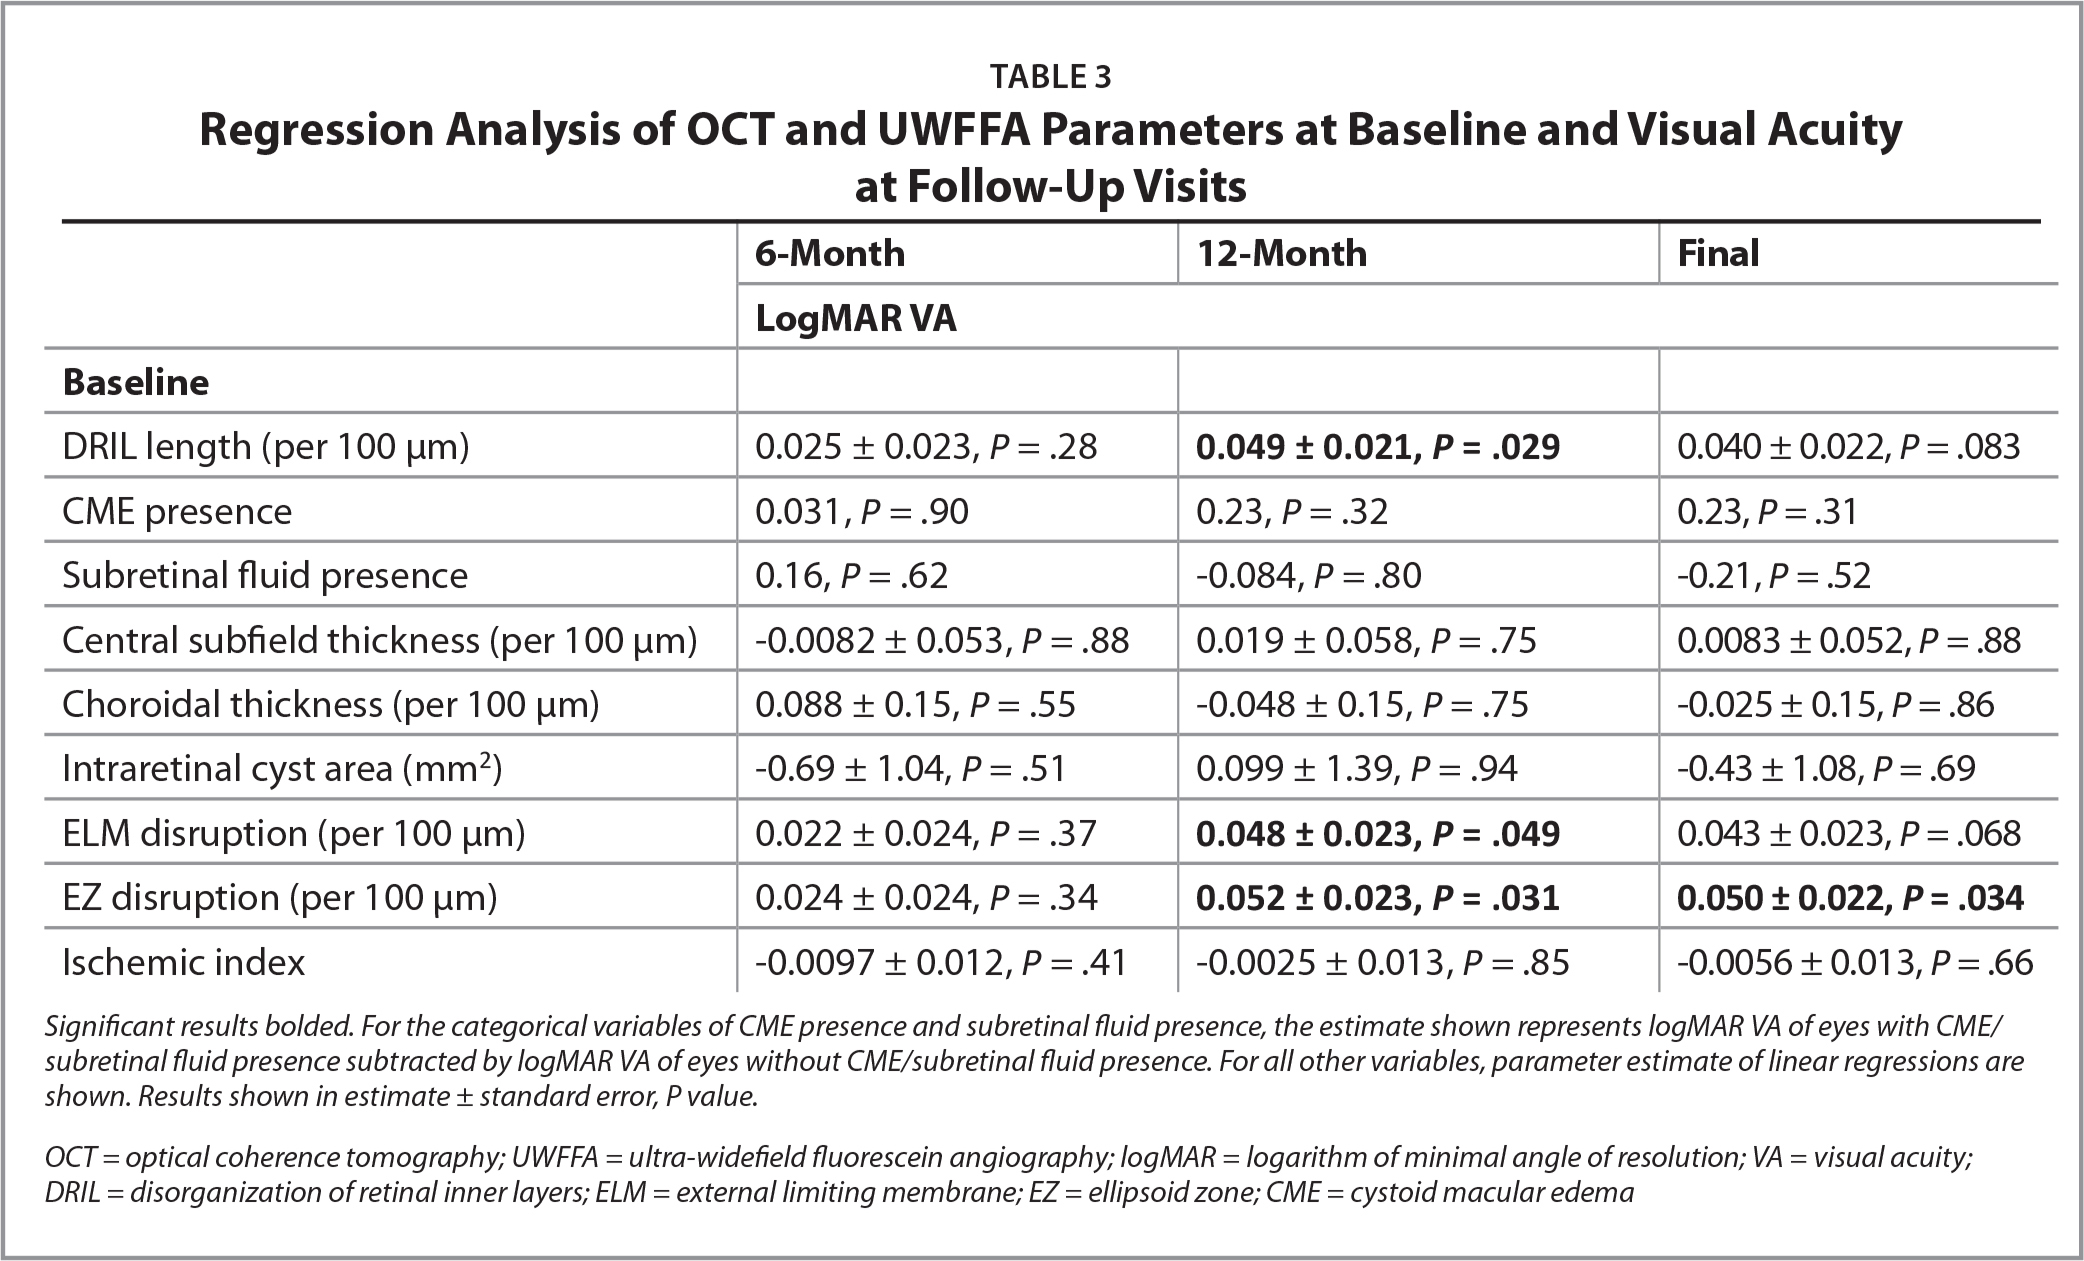 Regression Analysis of OCT and UWFFA Parameters at Baseline and Visual Acuity at Follow-Up Visits